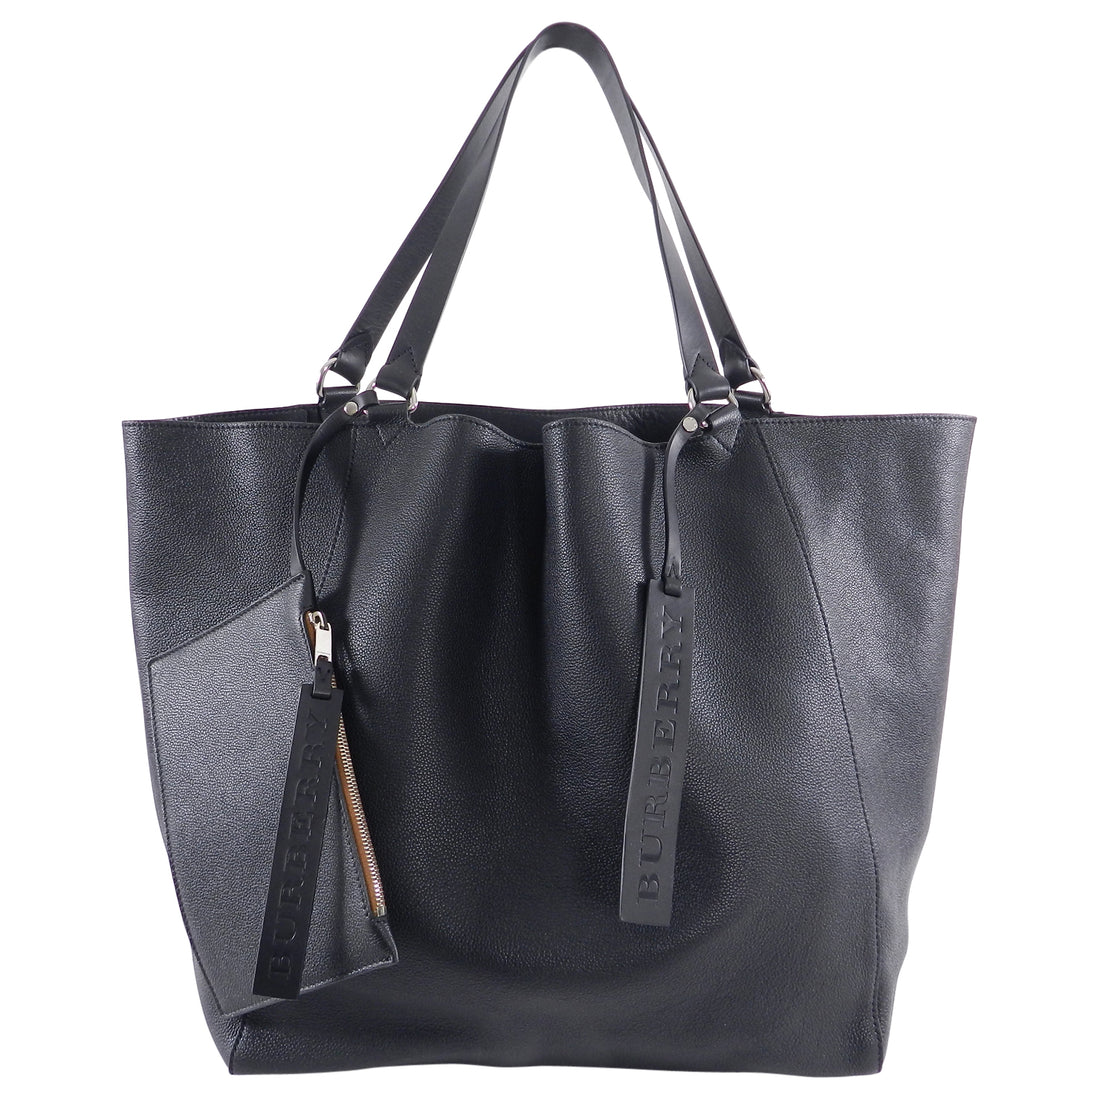 Burberry Extra Large Black Floppy Grained Leather Tote Bag